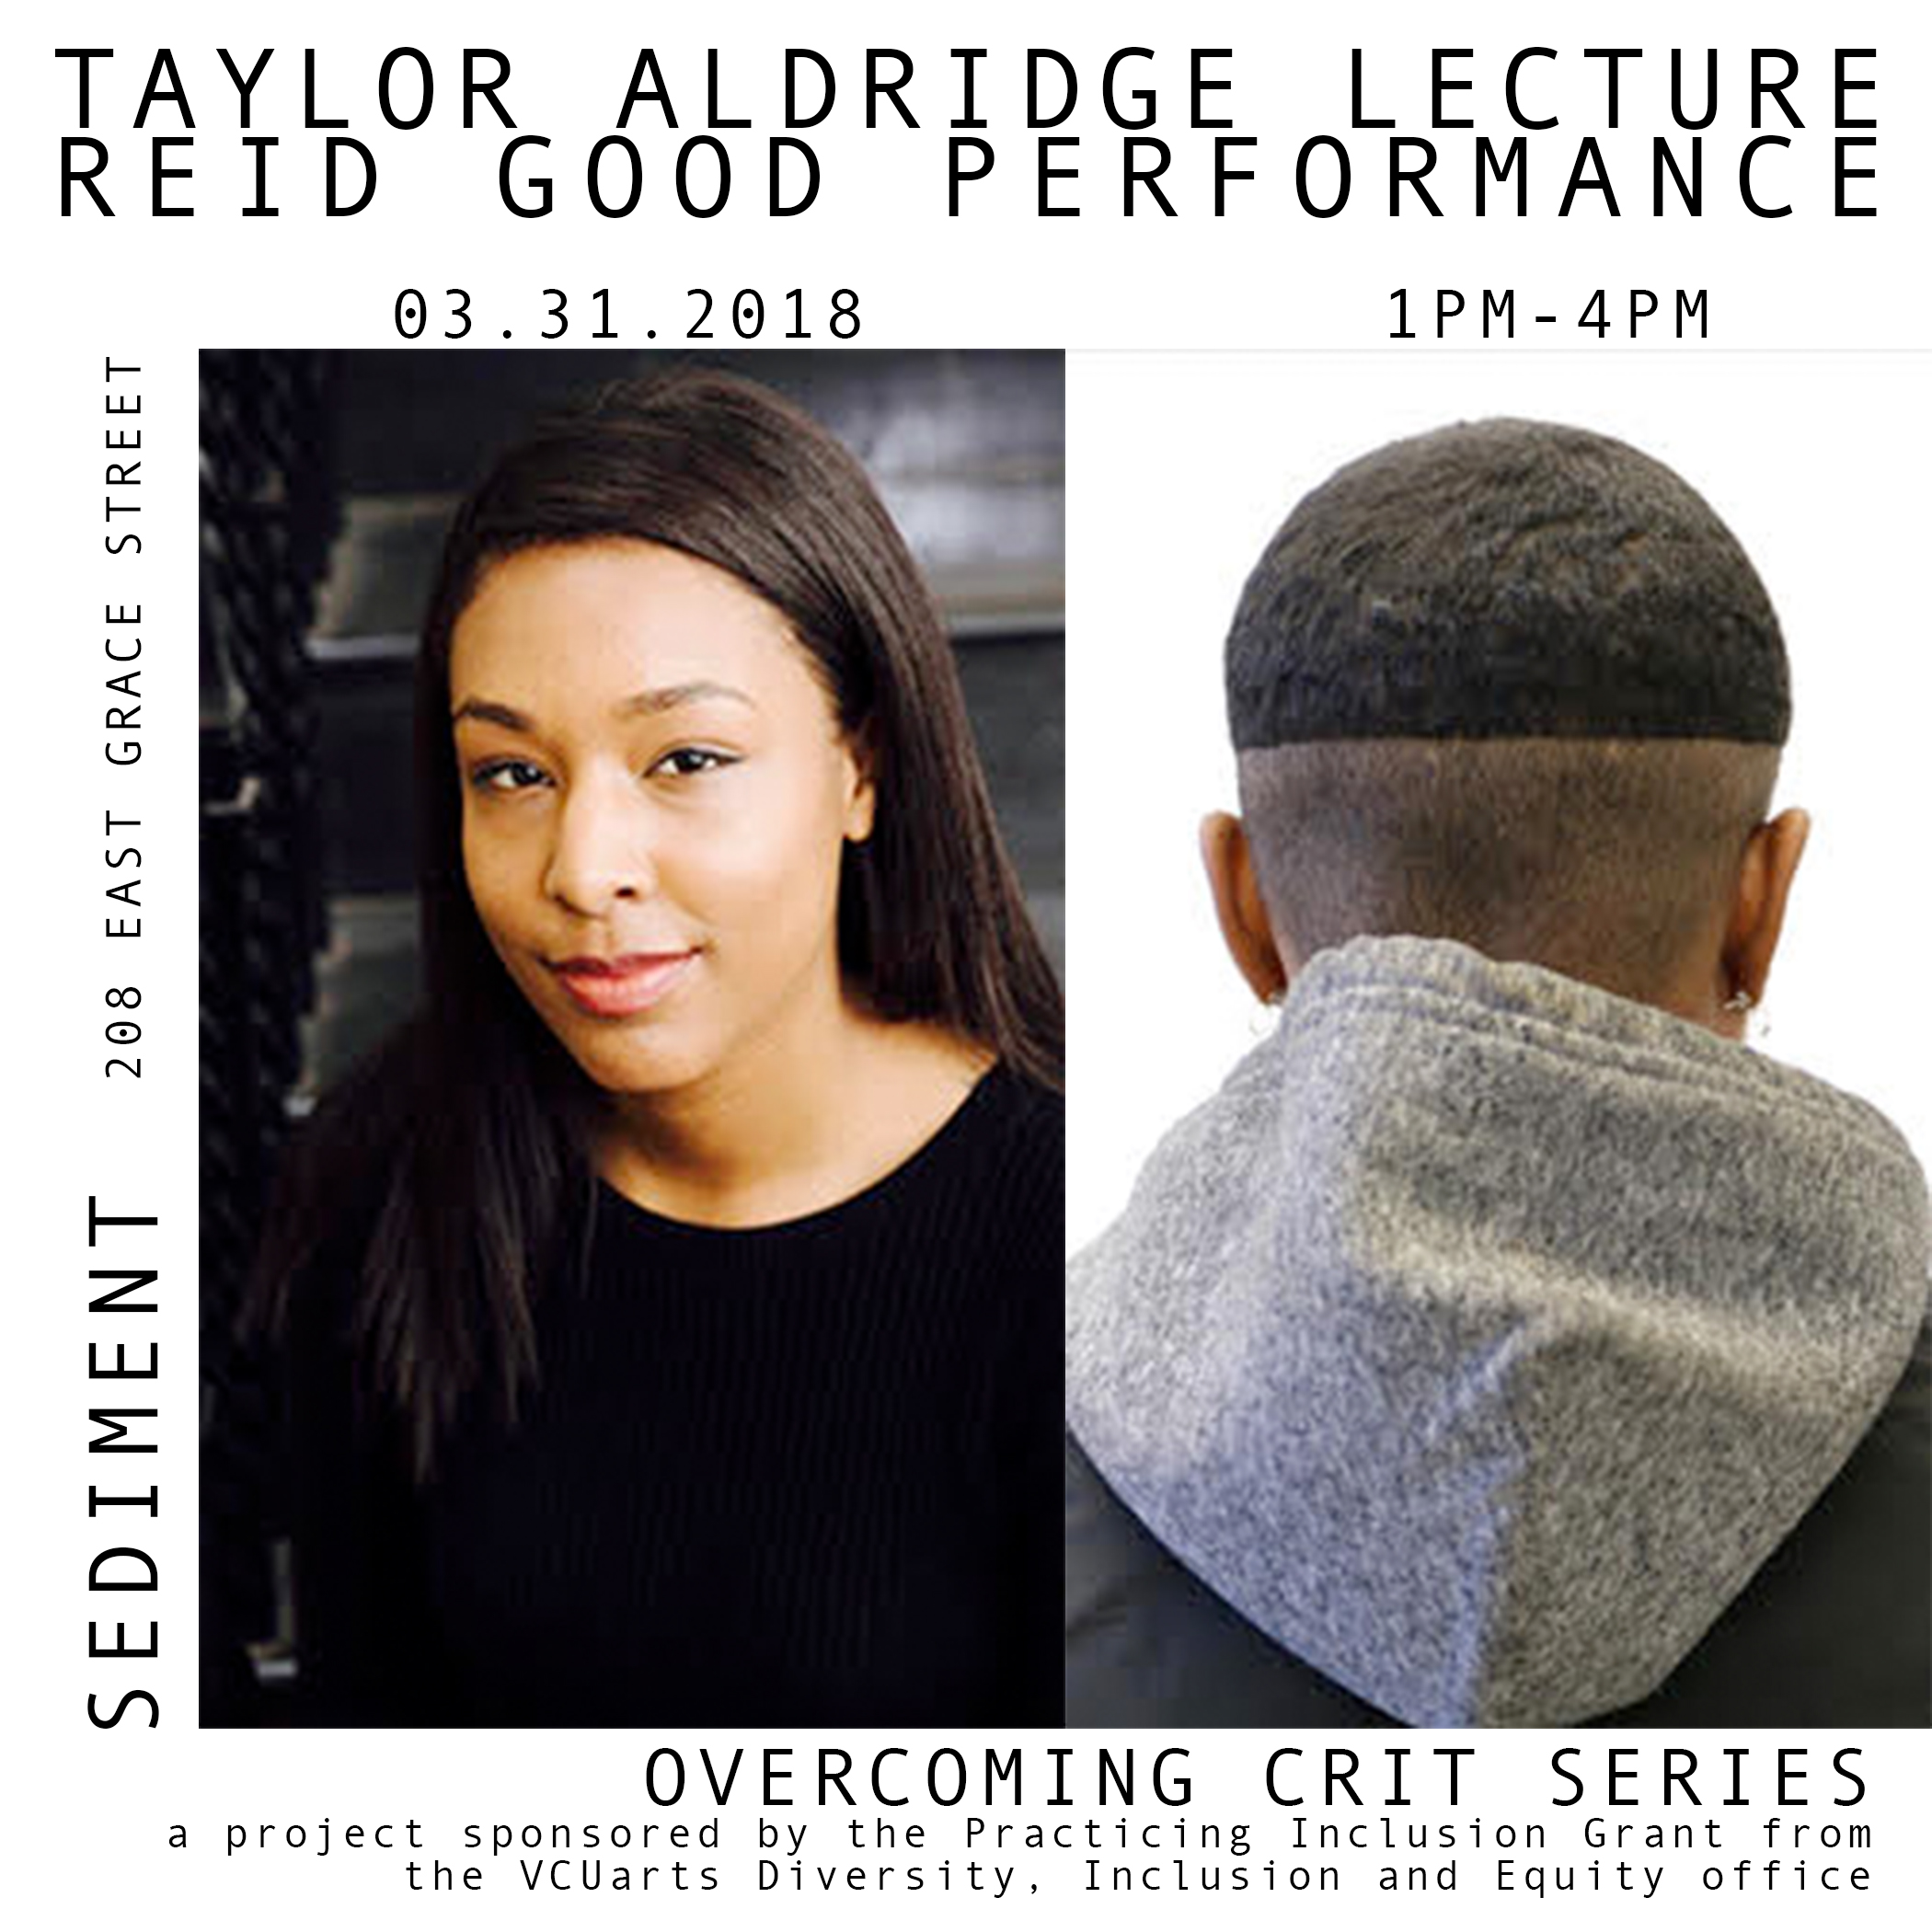 Taylor Renee Aldridge is a Detroit based writer and curator. She received her M.L.A from Harvard University with a concentration in Museum Studies and a B.A from Howard University with a concentration in Art History. In 2015 she co-founded ARTS.BLACK, a journal of art criticism from Black perspectives.Taylor is currently the assistant curator of contemporary art at the Detroit Institute of Arts. She has worked for the N'Namdi Center for Contemporary Art, the Ethelbert Cooper Gallery of African & African American Art, and The National Museum of American History (Smithsonian Institutions) as a Goldman Sachs Junior Fellow.Taylor is the 2016 recipient of The Andy Warhol Foundation Creative Capital Arts Writers Grant for Short Form Writing. She has written for Art21, ARTNews, ContemporaryAnd, Detroit MetroTimes, SFMoMA's Open Space and Hyperallergic.   reid good is an interdisciplinary artist and musician based in Detroit. reid grew up in a musical household in Flint, MI and began writing songs and producing music at the tender age of 8-years-old. Performing under a variety of stage names since the early 2000's, reid good reemerged onto the musical scene in 2017 with their debut EP,